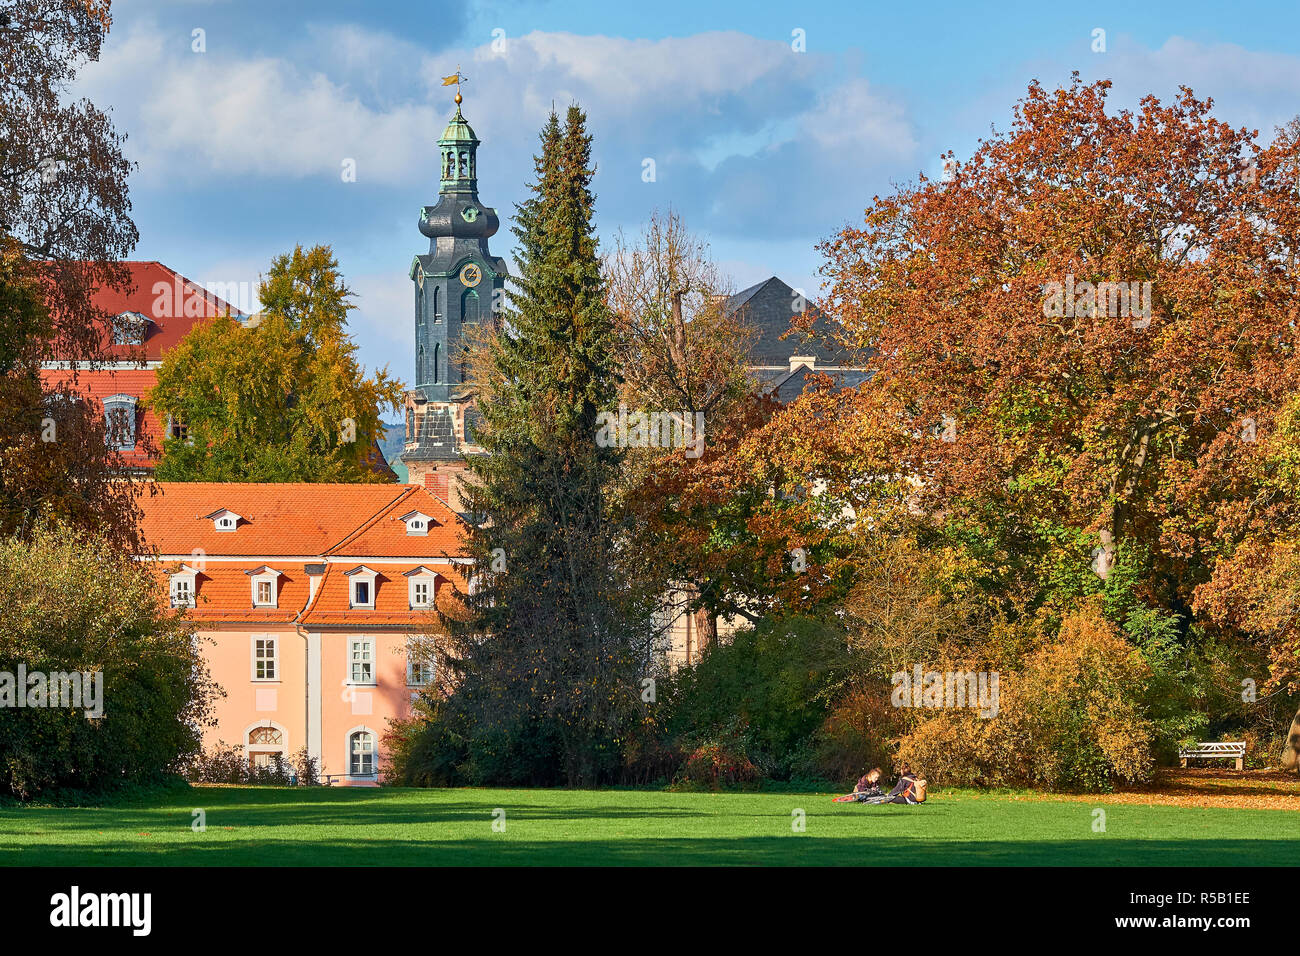 House of Frau von Stein with castle tower, Weimar, Thuringia - Stock Image